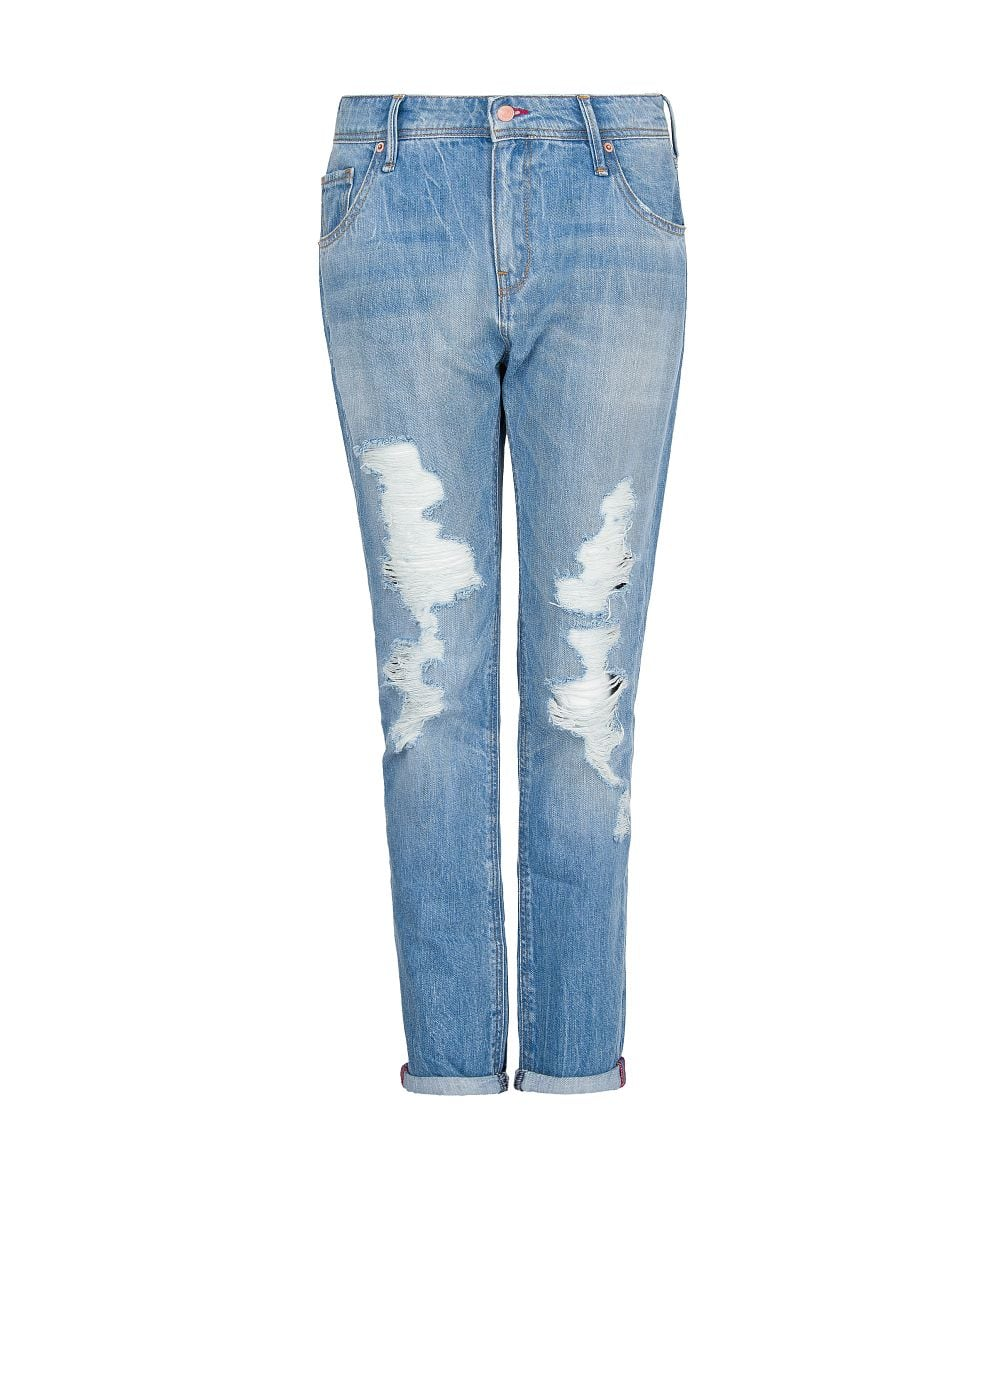 Ripped boyfriend jeans light wash – Global fashion jeans models